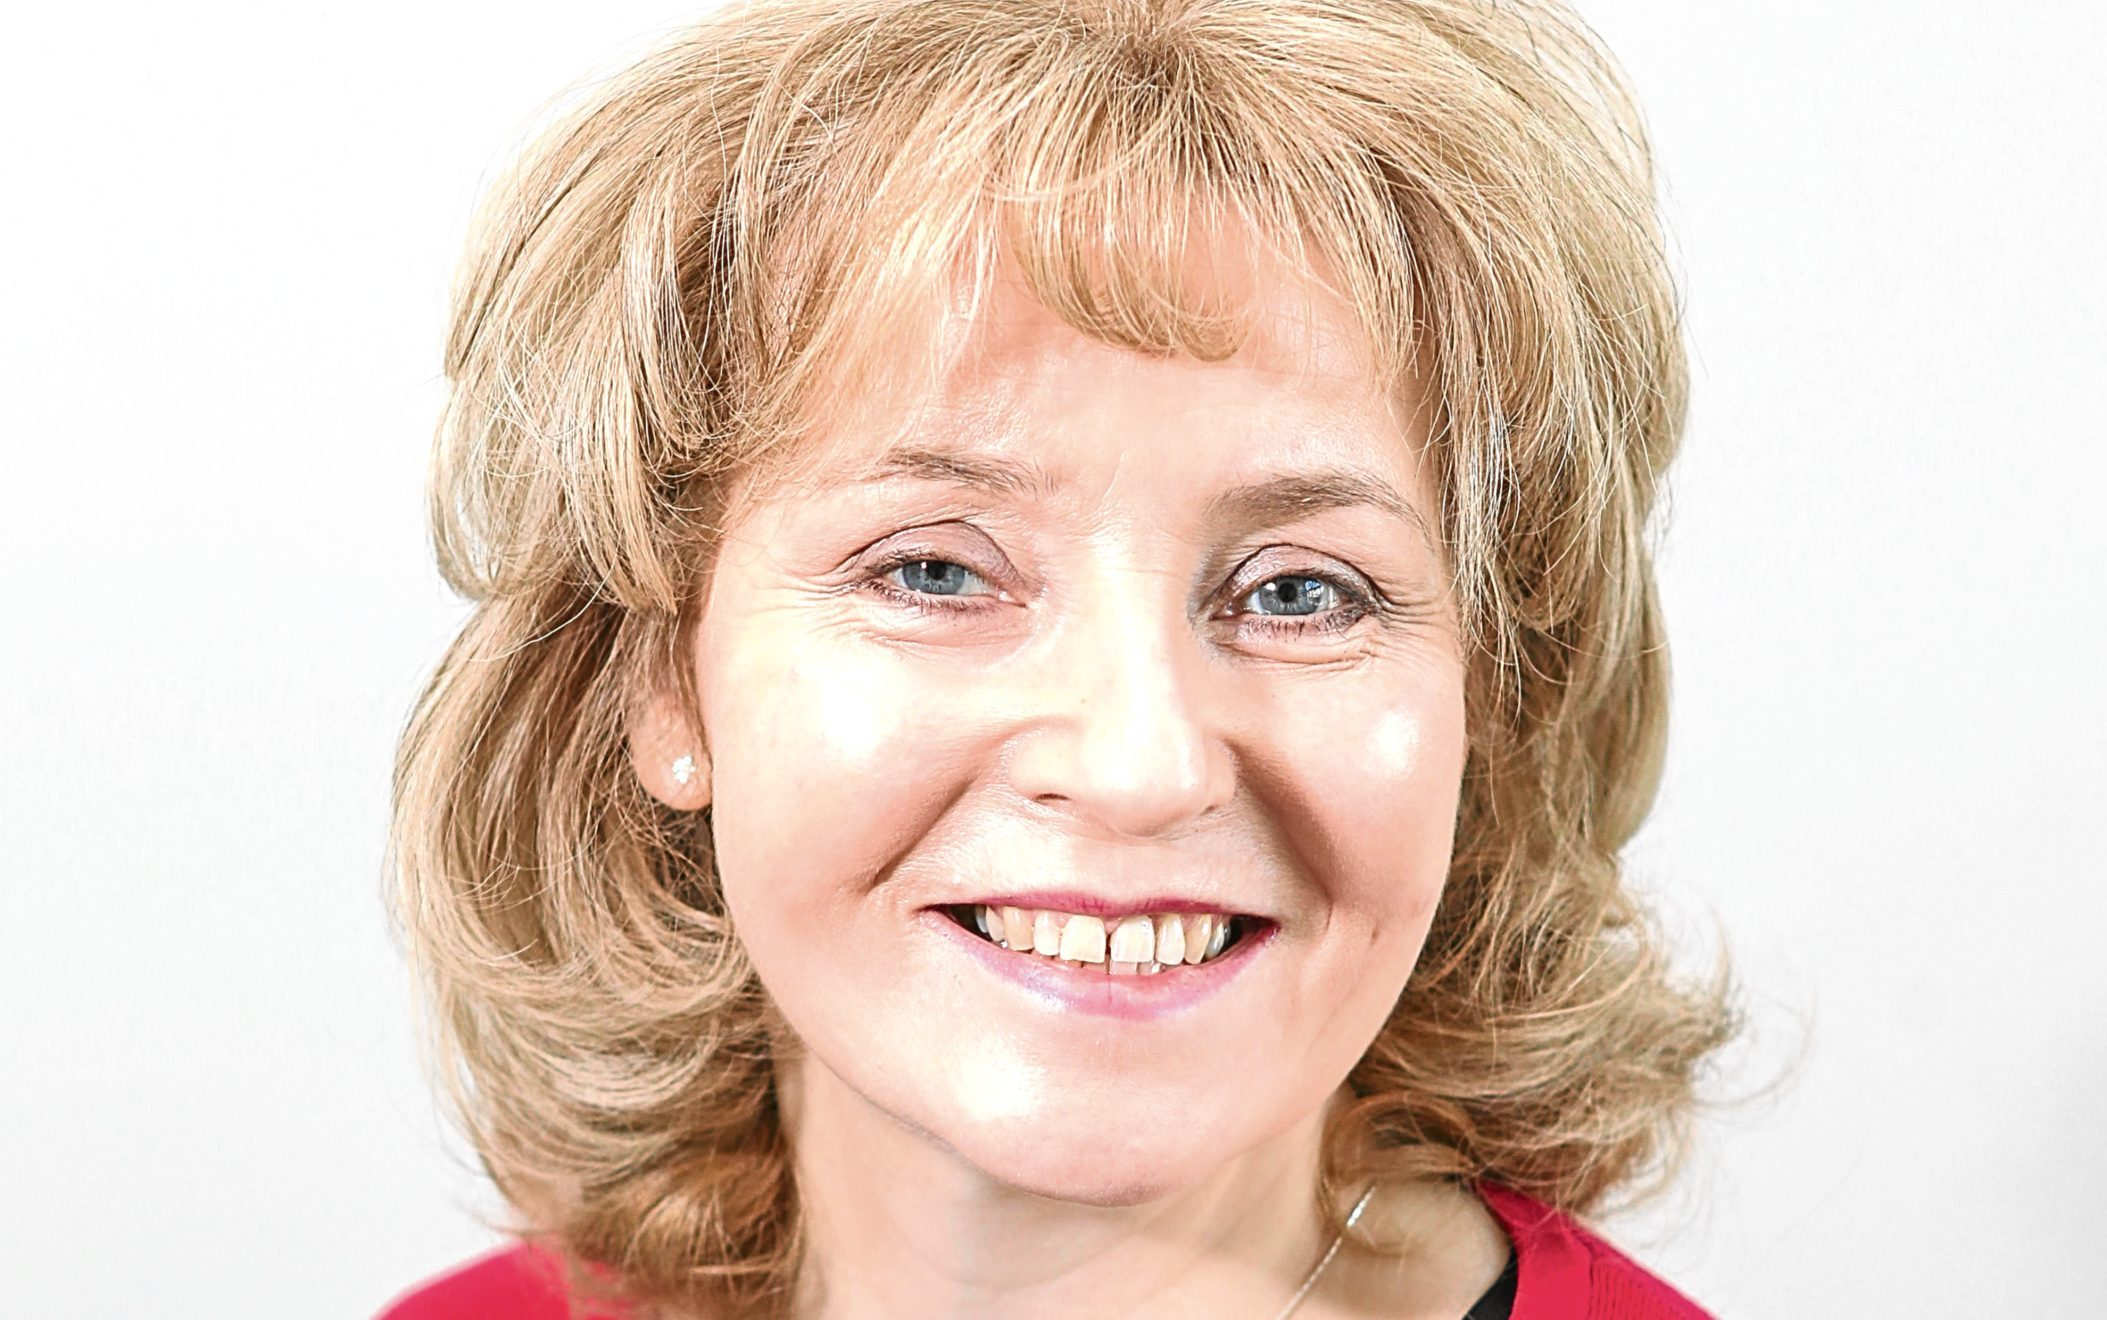 Sunday Post reporter Janet Boyle